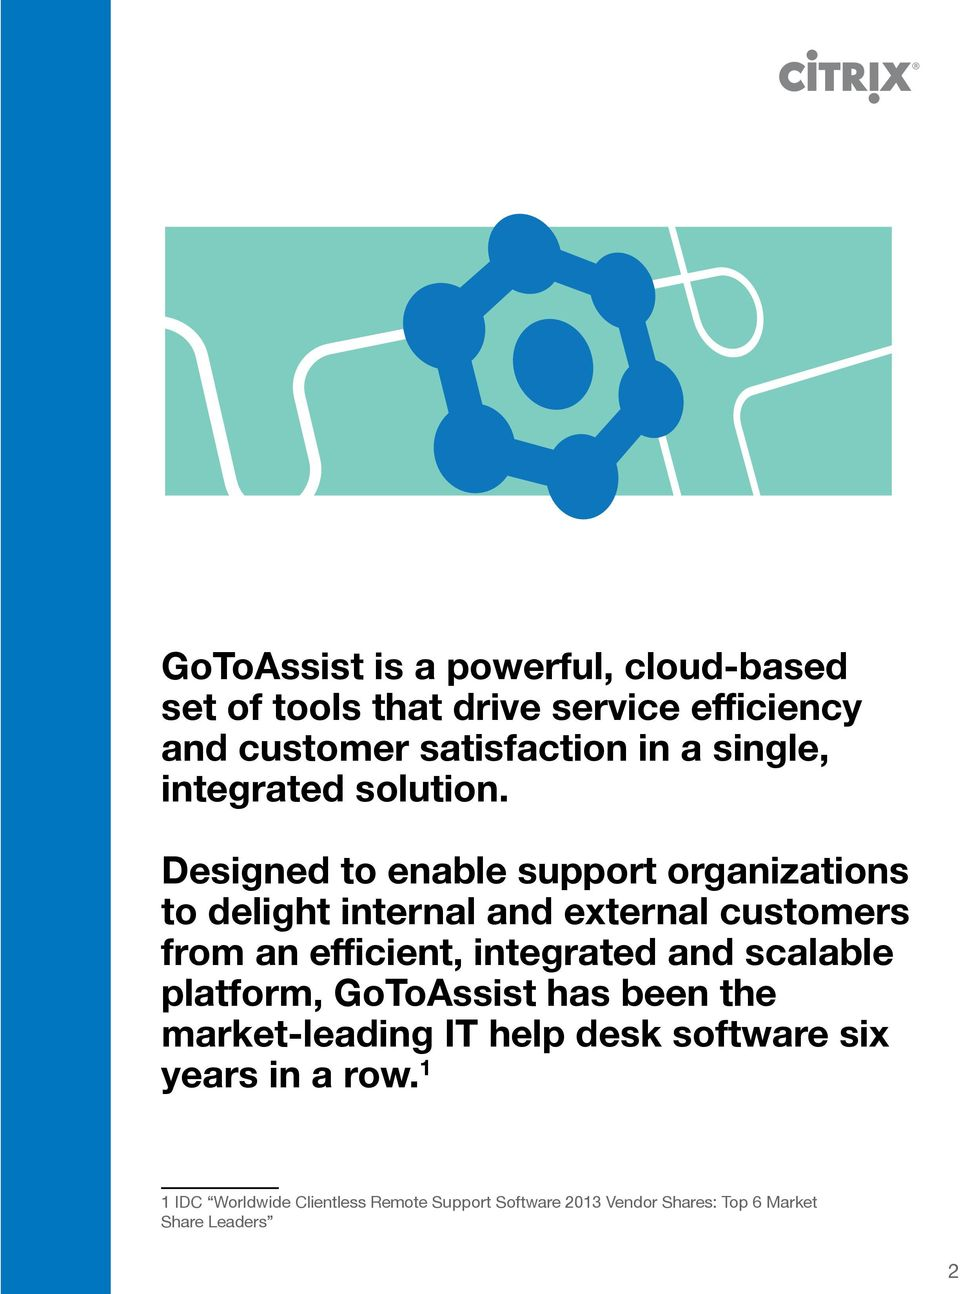 Designed to enable support organizations to delight internal and external customers from an efficient, integrated